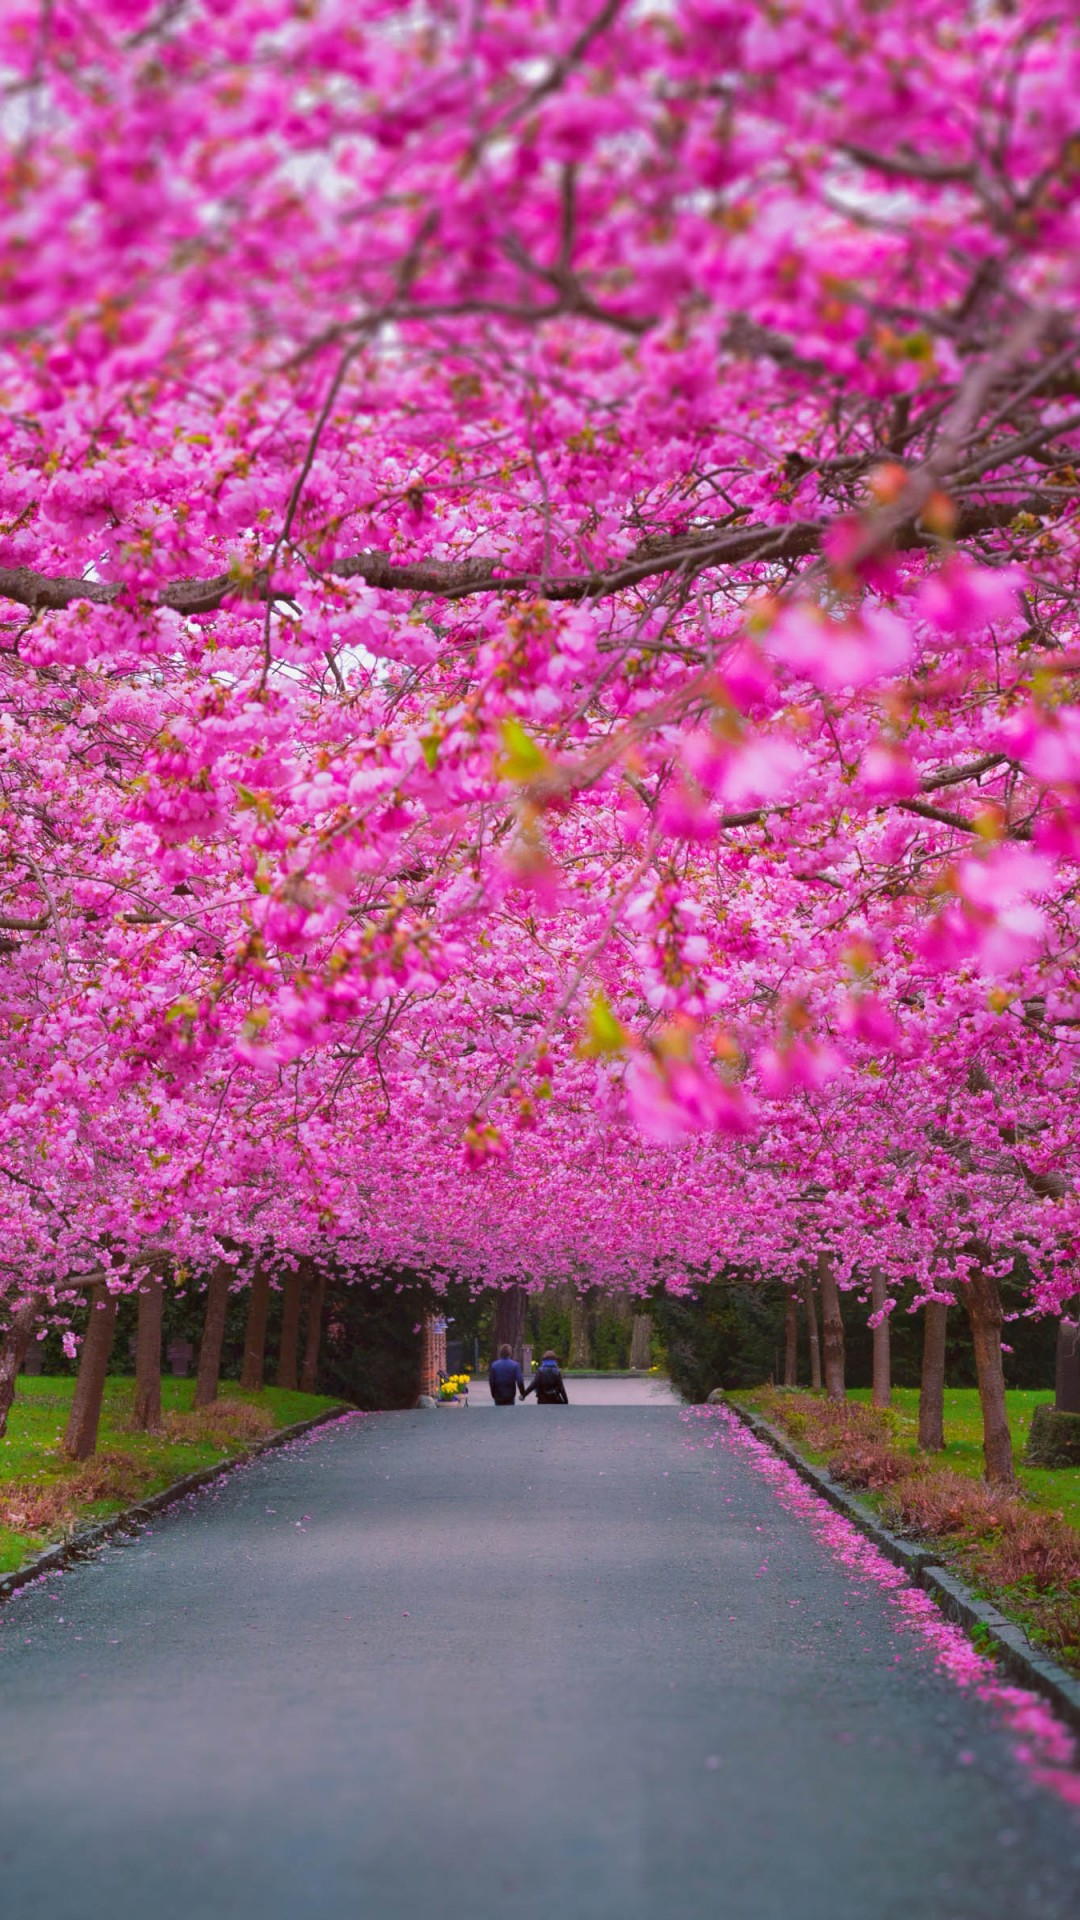 Beautiful Wallpaper With Quotes For Facebook Wallpaper Trees 4k 5k Wallpaper Sakura Spring Nature